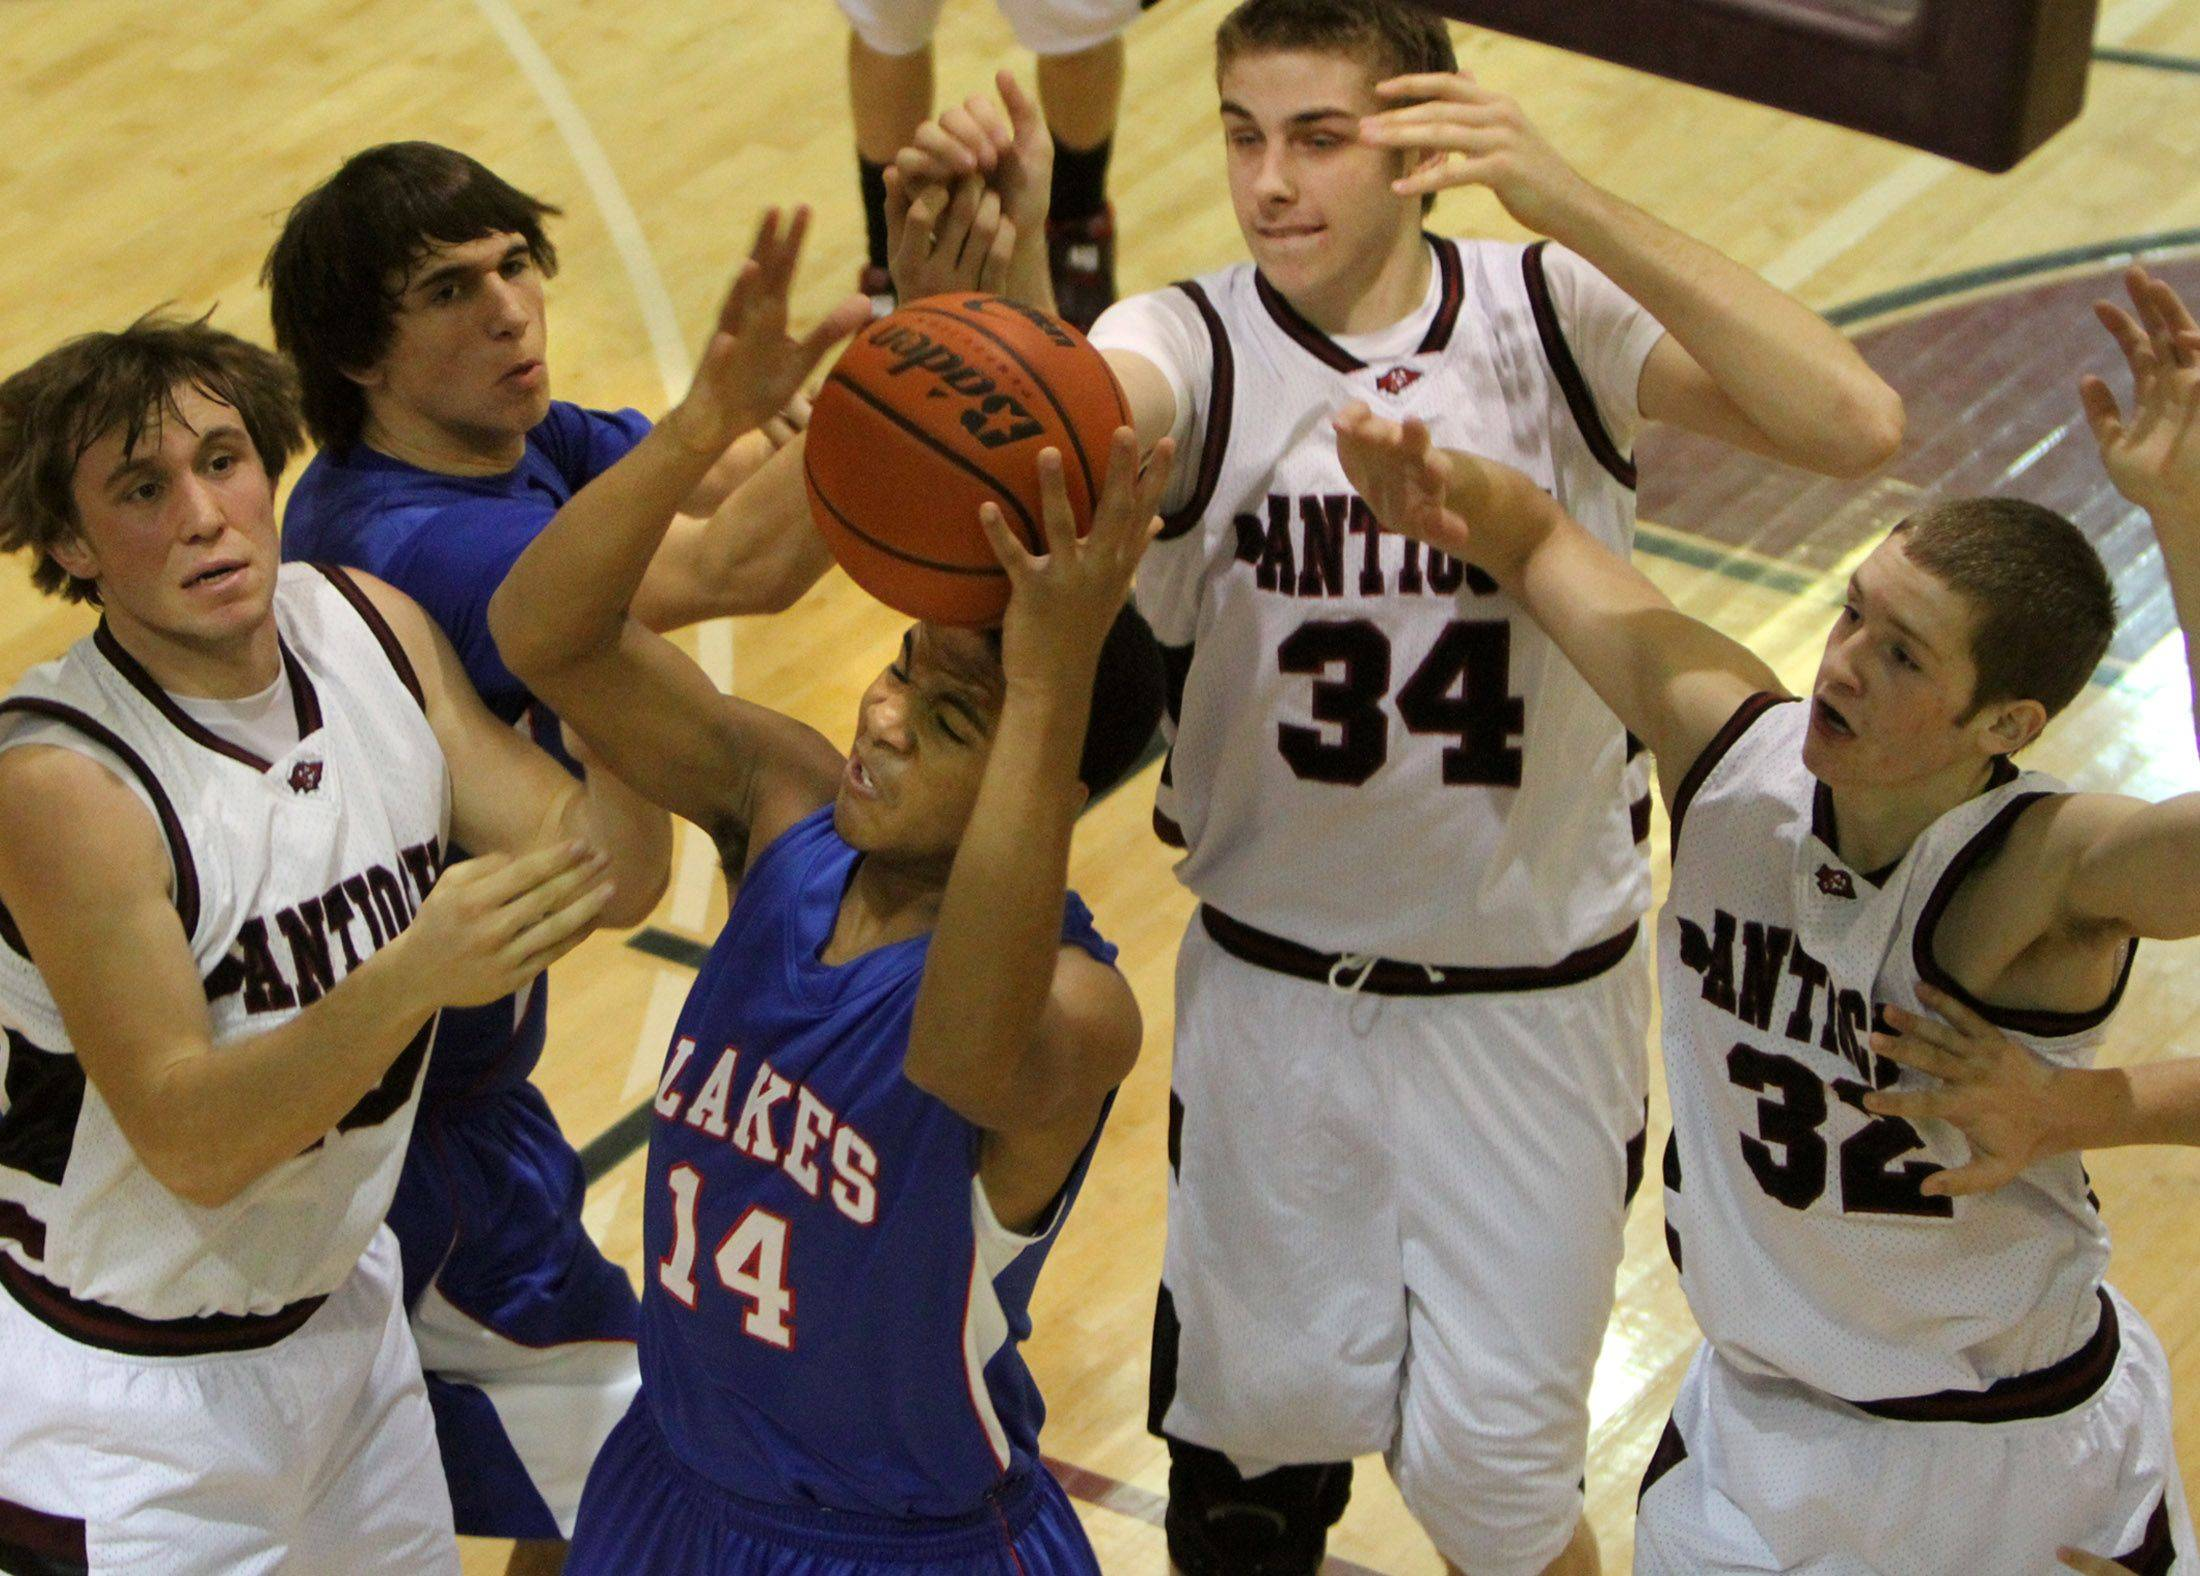 Lakes' Blain Tanner pulls in a defensive rebound at Anticoh.